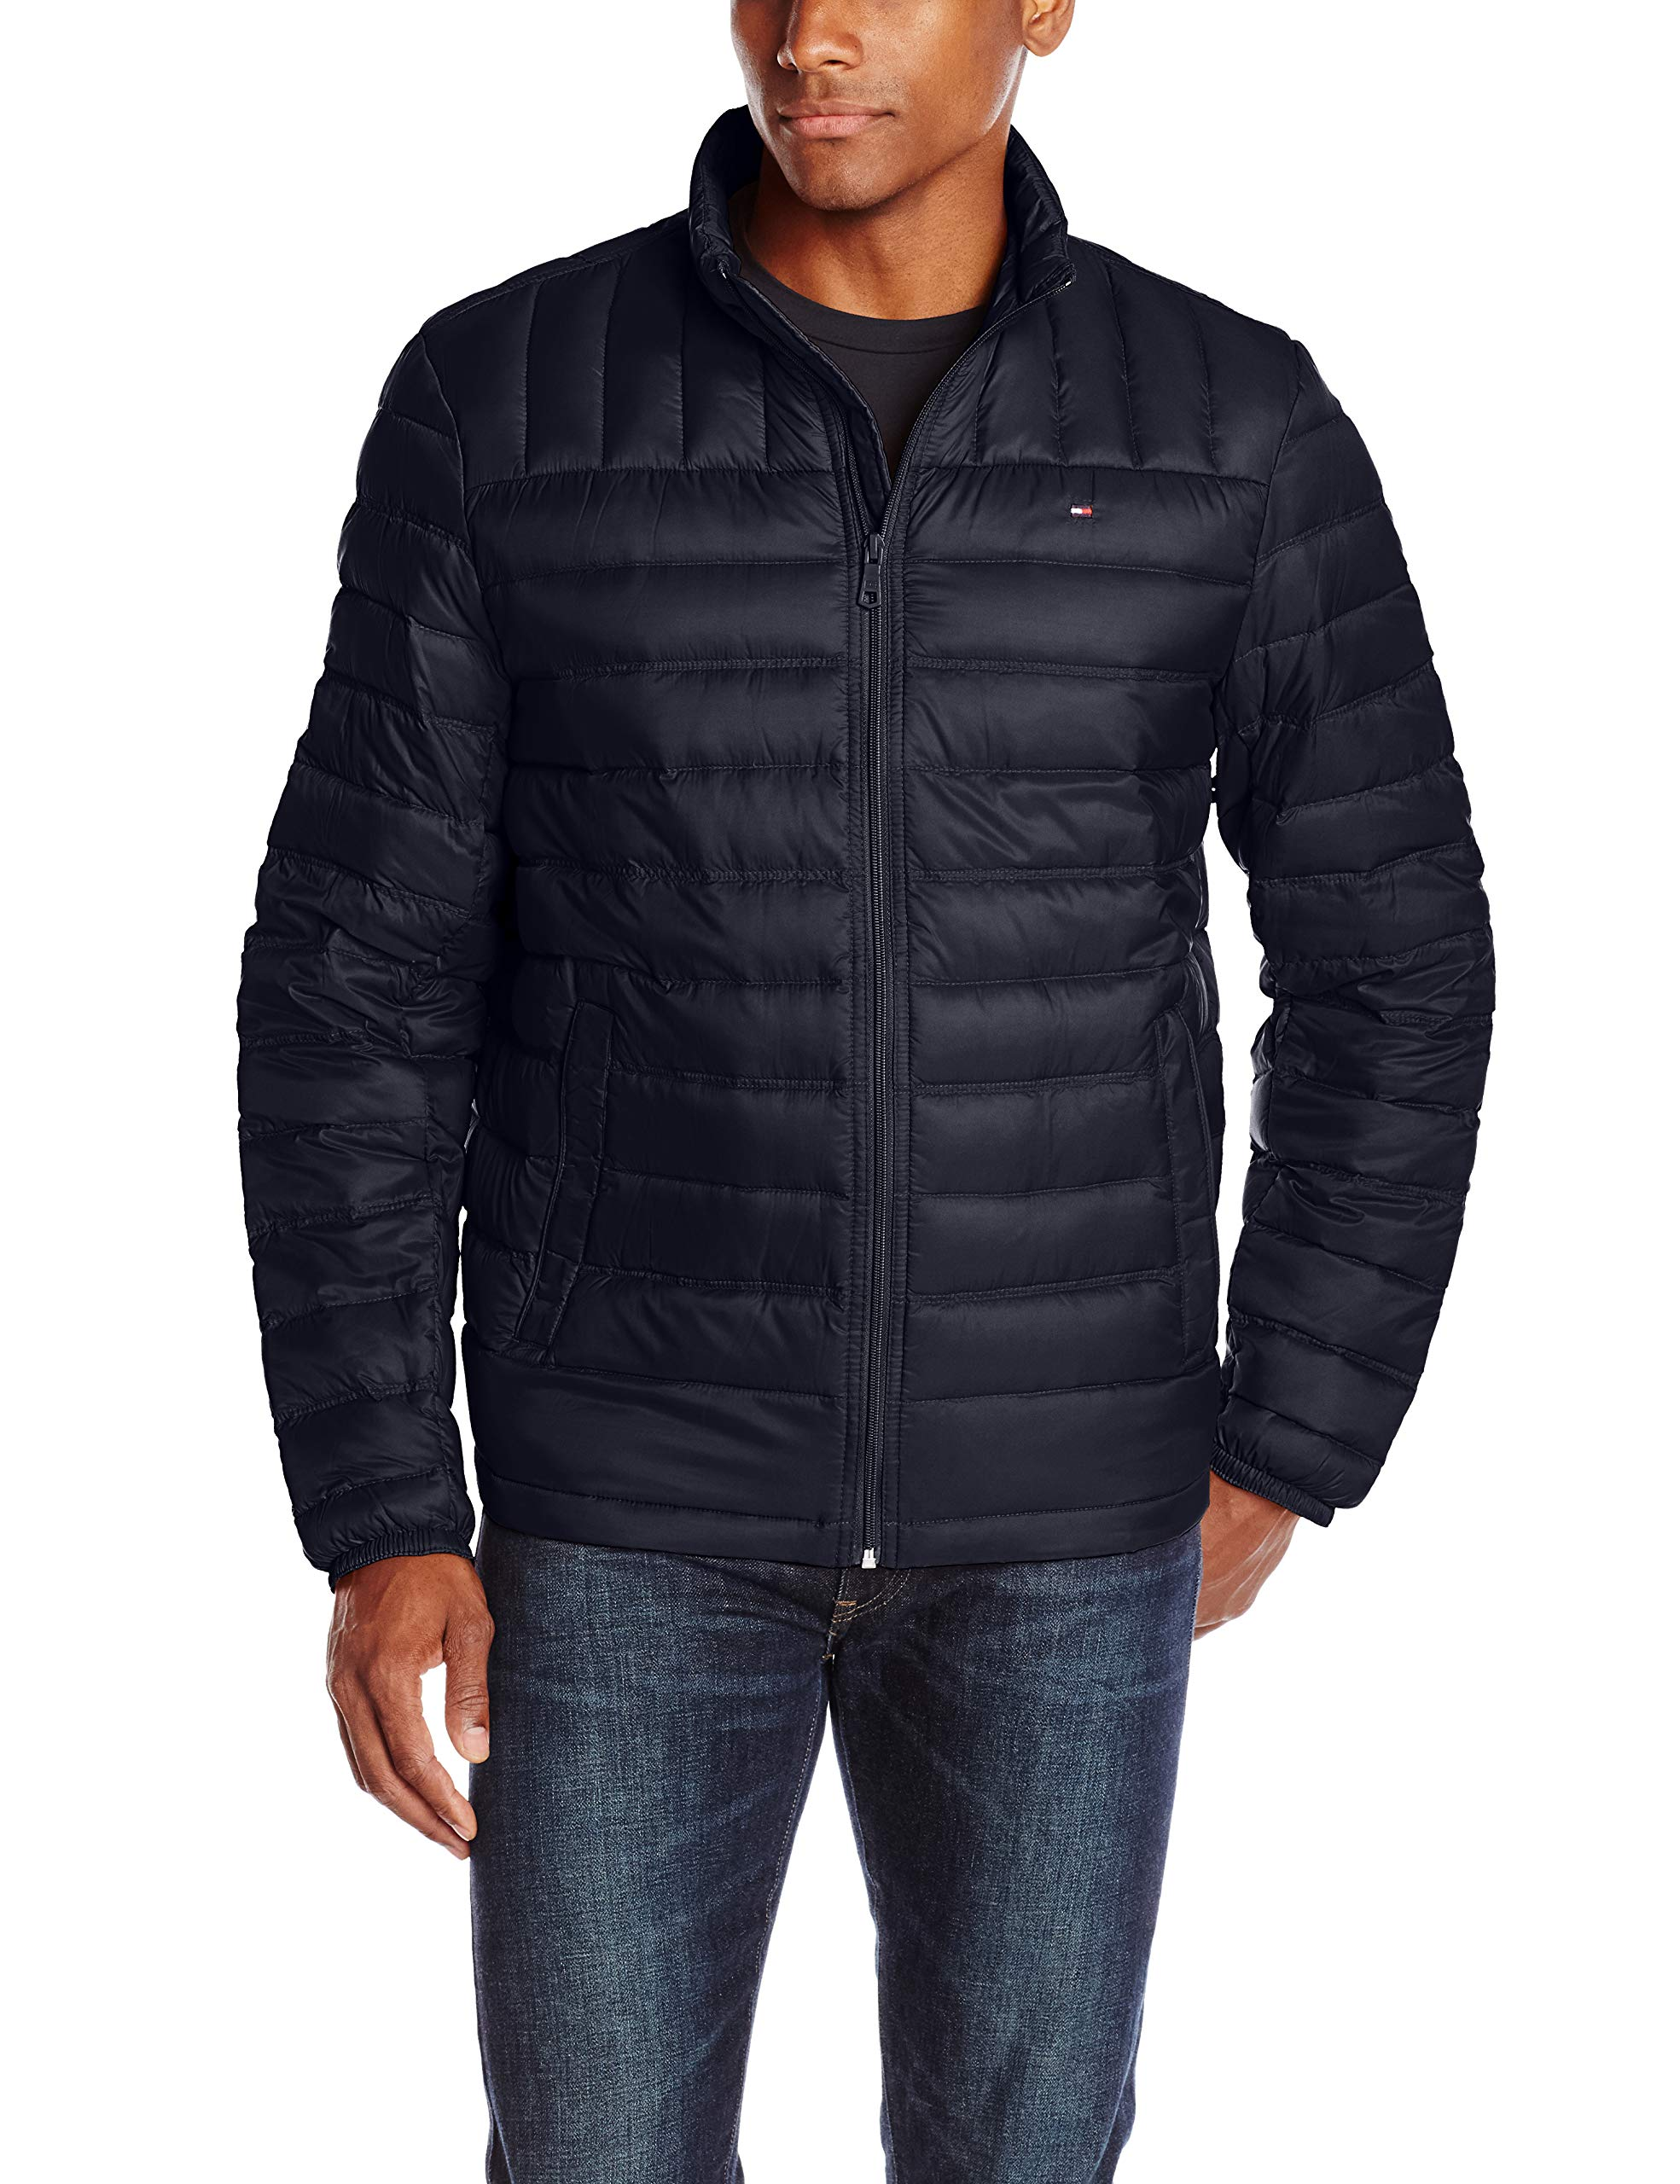 Tommy Hilfiger Men's Packable Down Jacket (Regular and Big & Tall Sizes), Midnight, X-Large